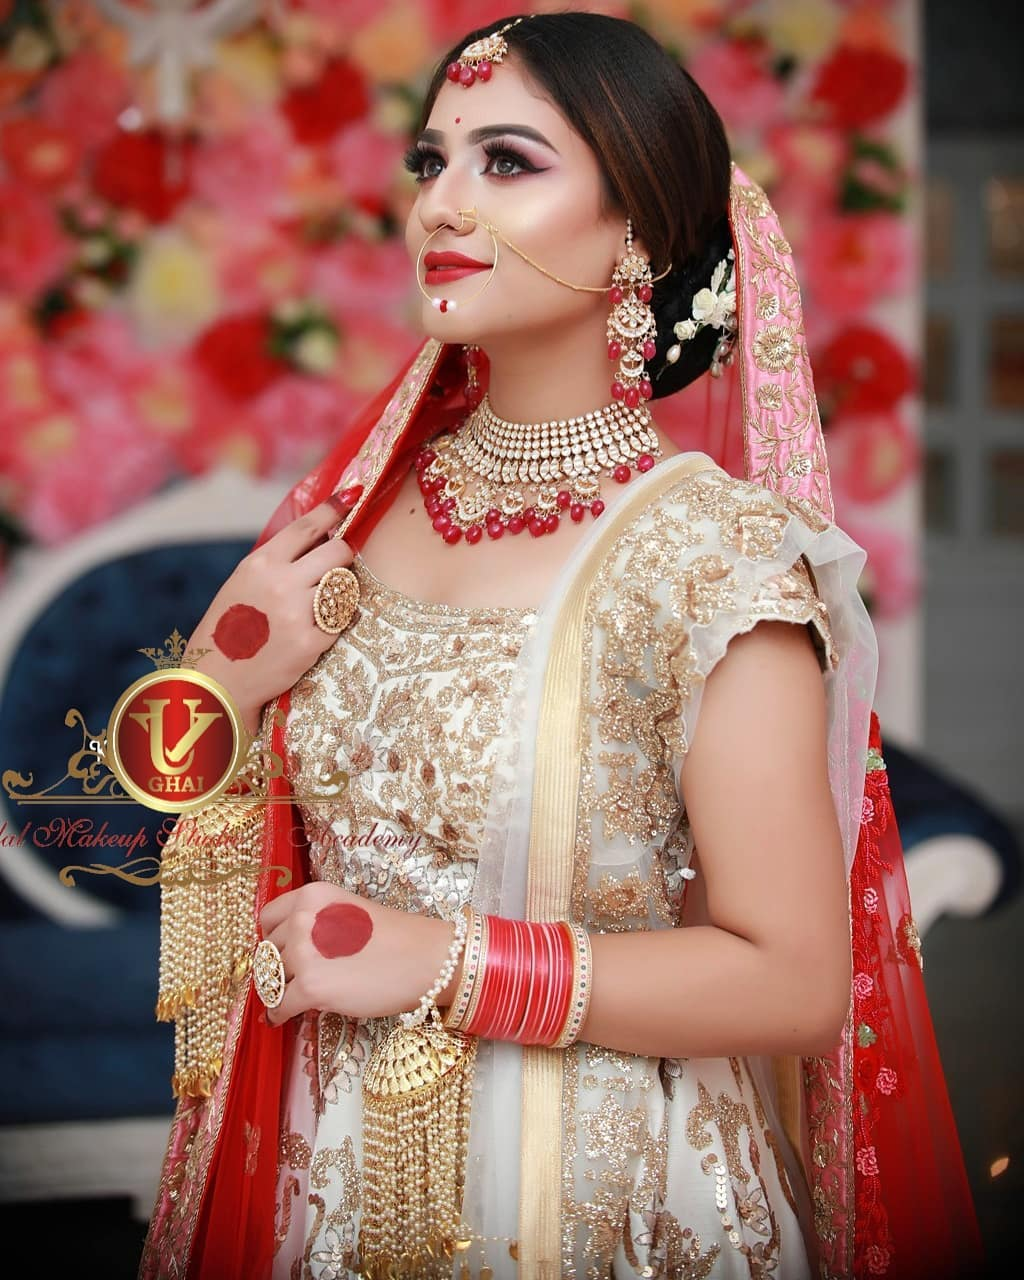 Classic red lips & natural beauty in bridal makeup with jewellery, stylish hairstyles free images download hd